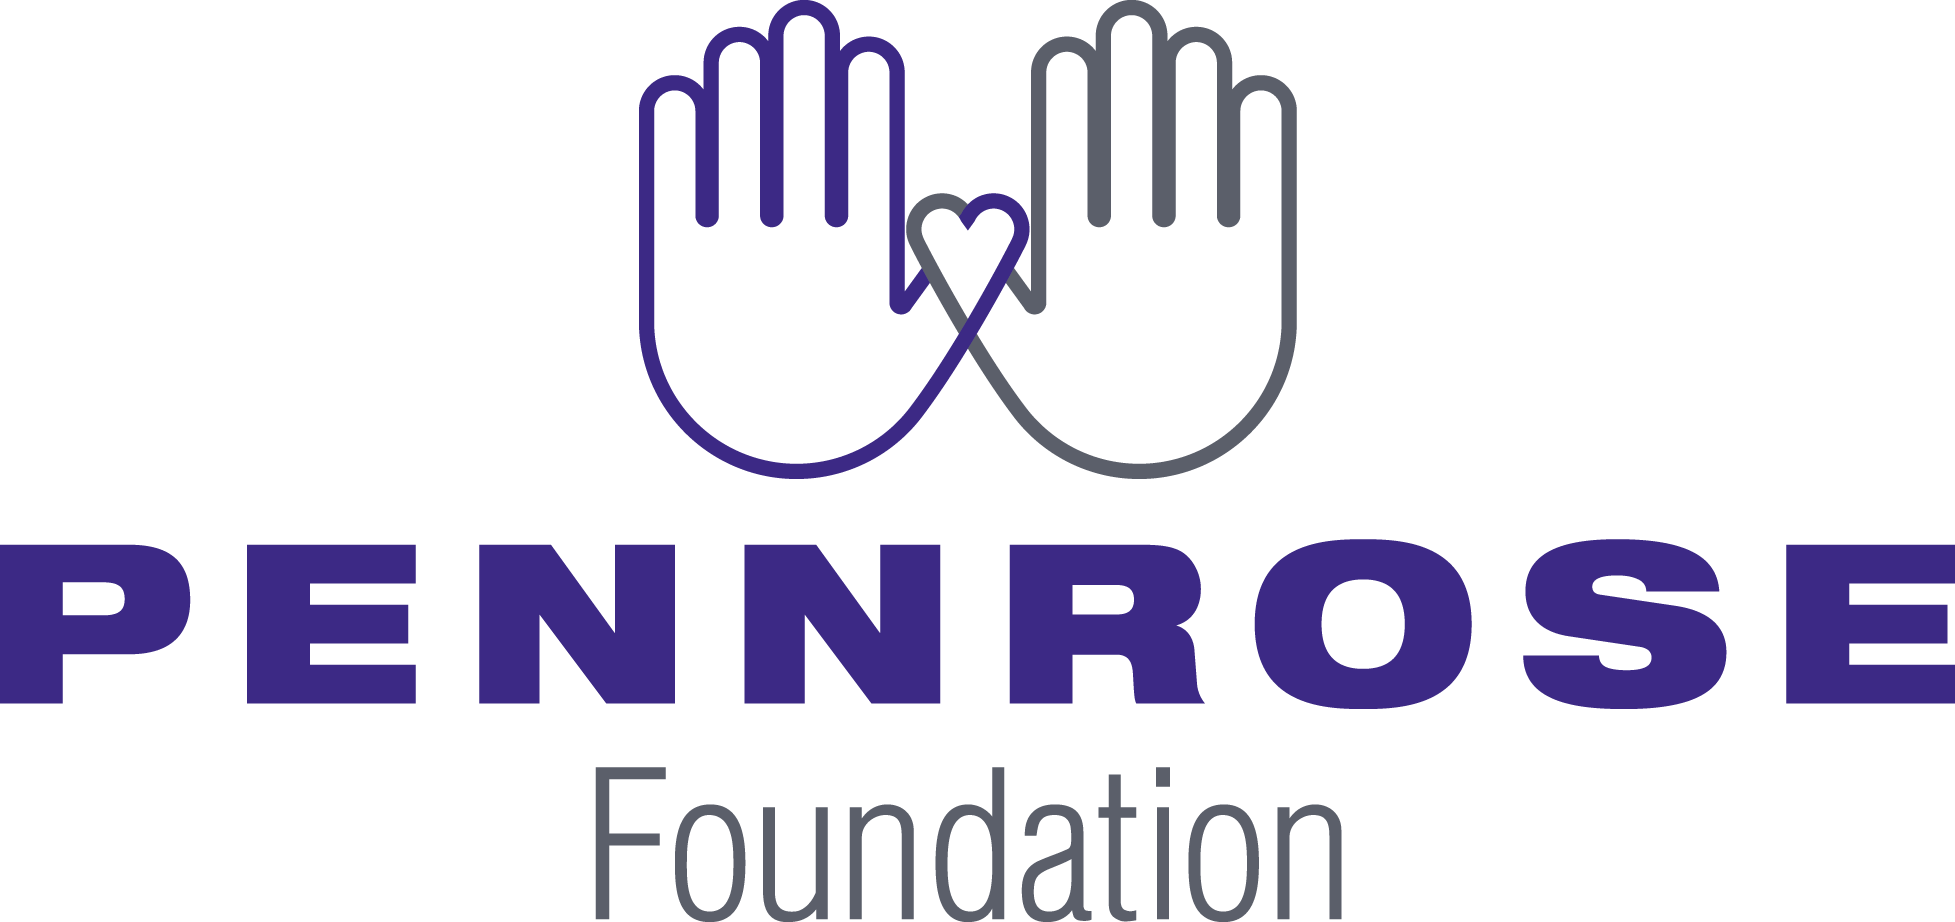 Pennrose Foundation Logo